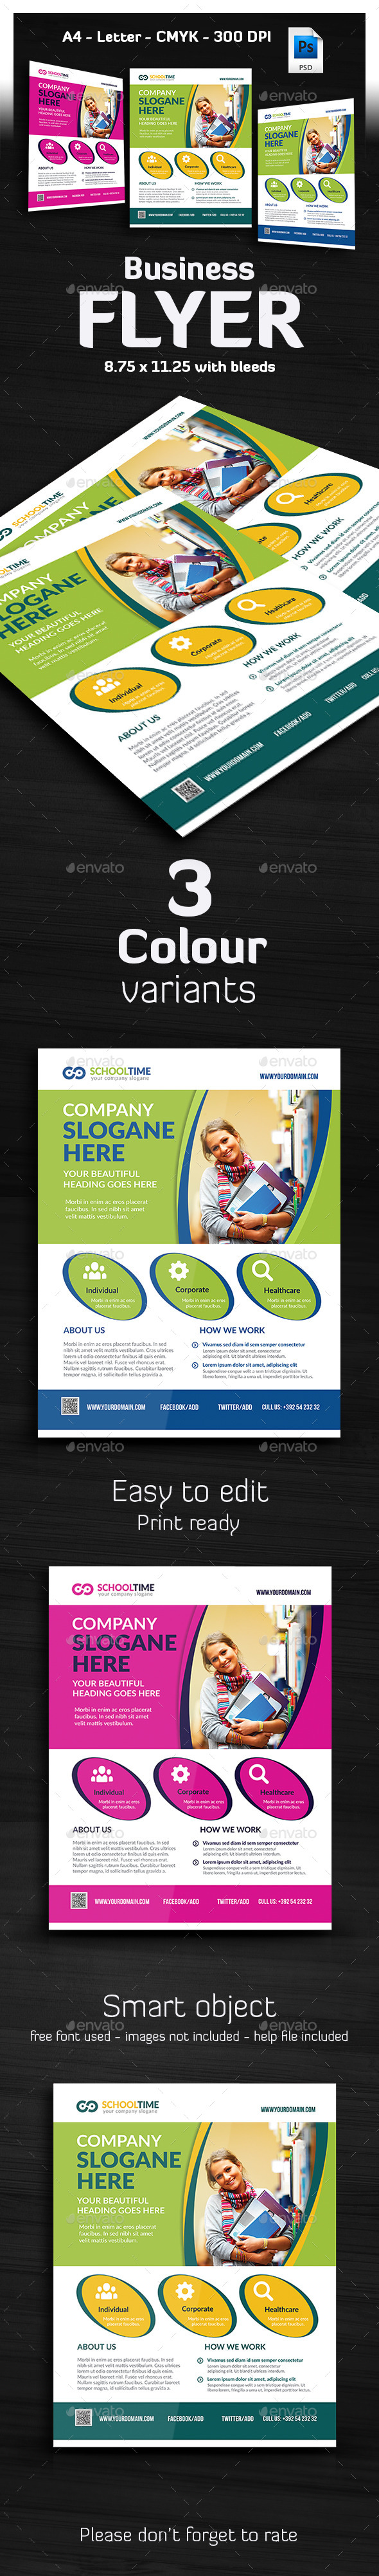 Ultimate Business Flyer  - Corporate Flyers